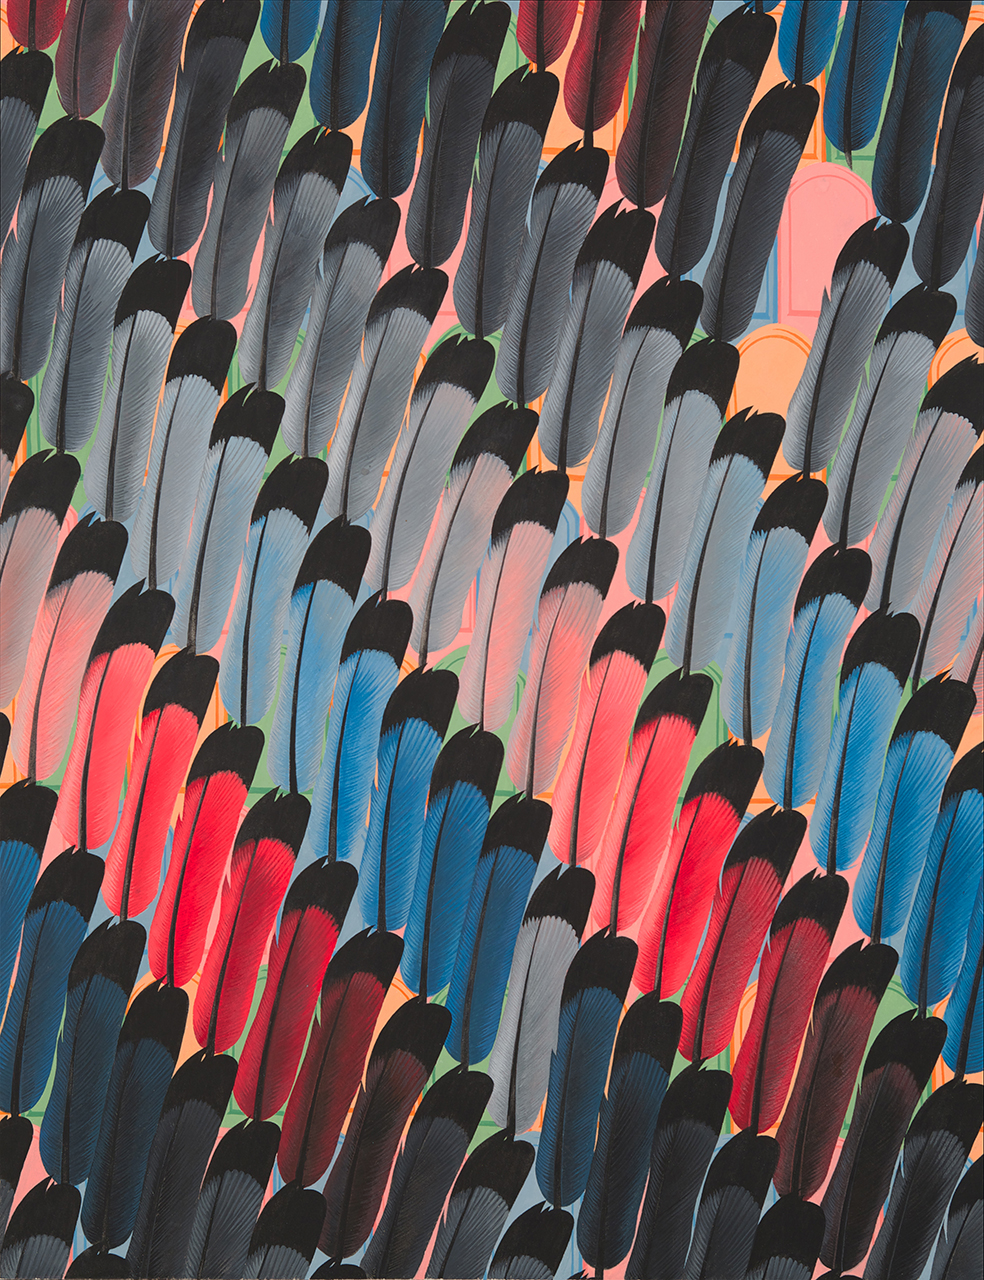 Crowd of Feathers 2014 Gouache on Paper 21.5 x 16.5 inches